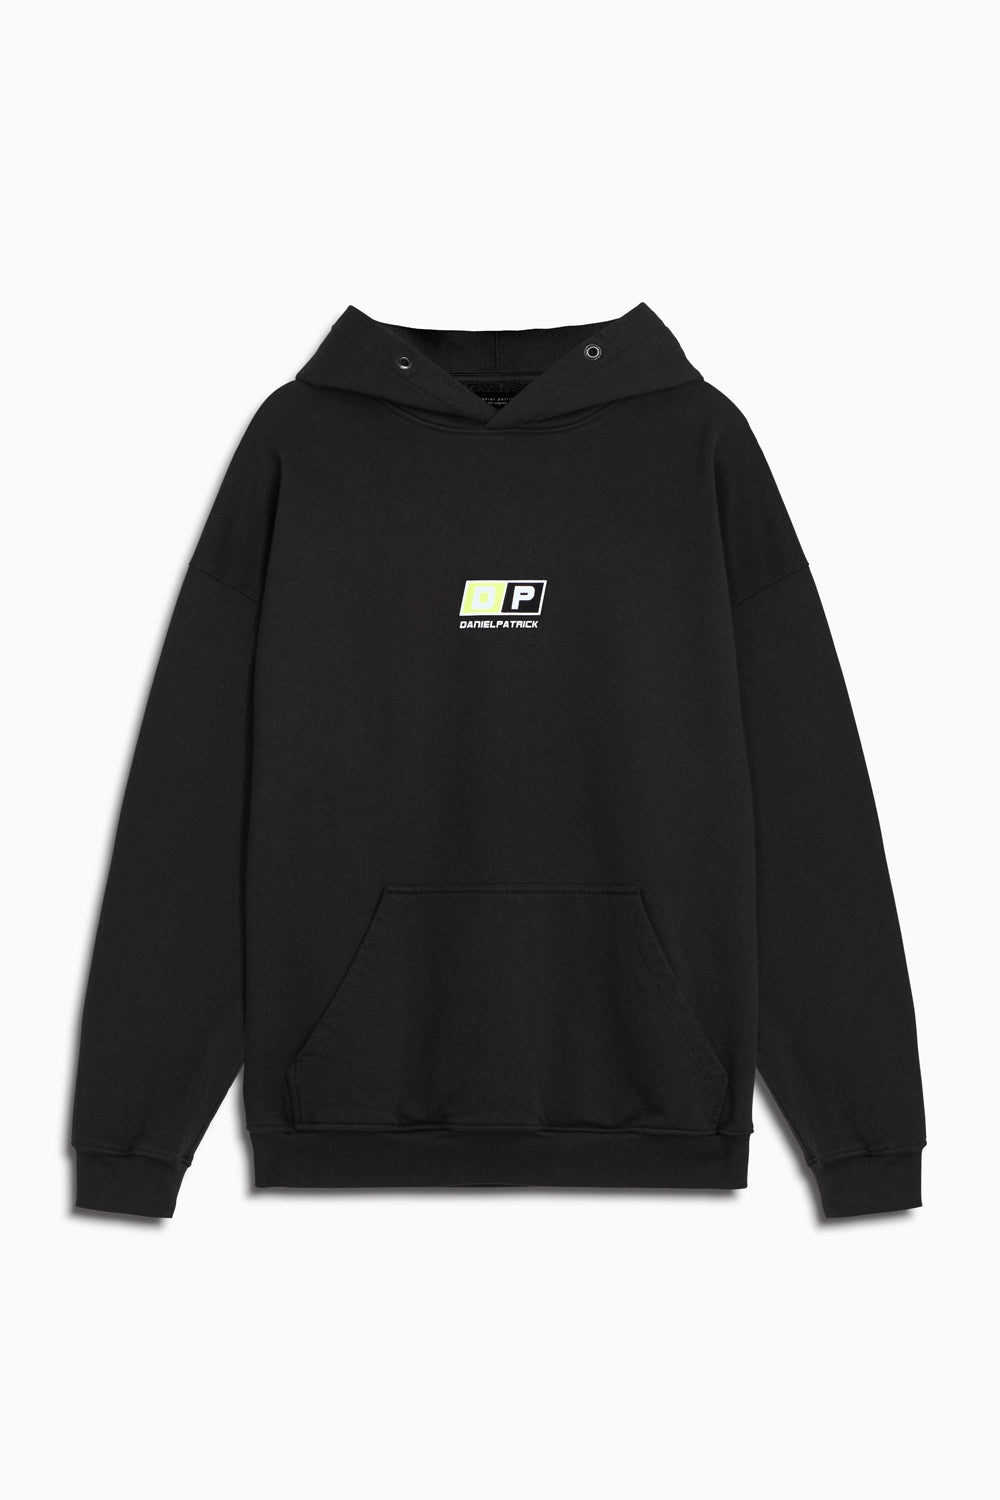 motorsport hoodie in black/neon yellow by daniel patrick